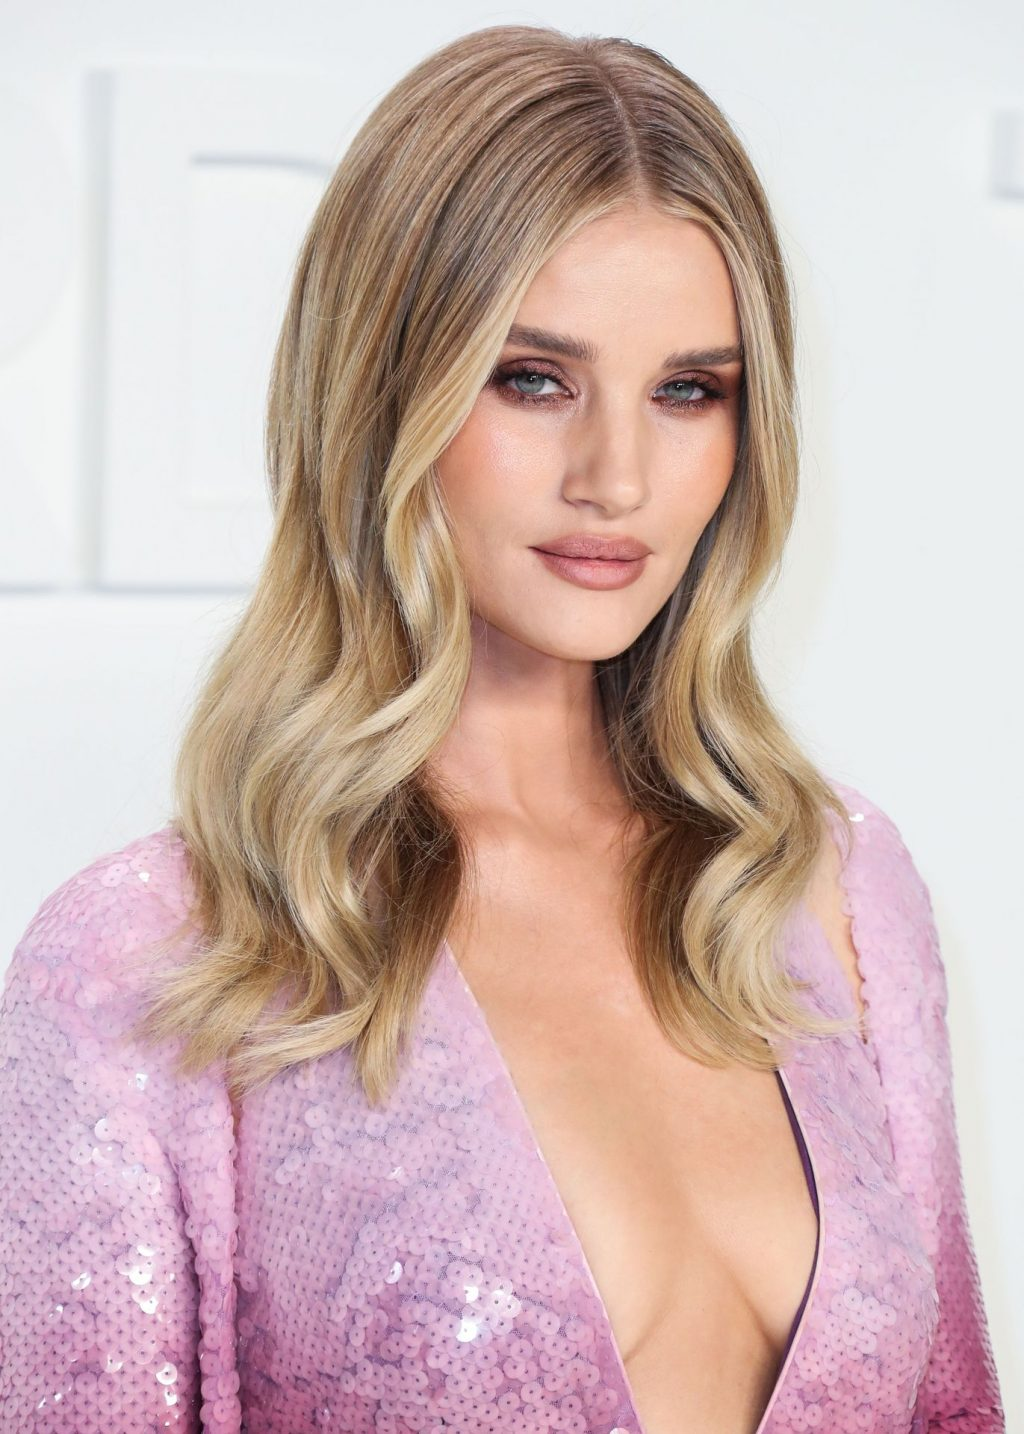 Rosie Huntington Whiteley Sexy The Fappening Blog 79 1024x1434 - Rosie Huntington-Whiteley Shows Her Cleavage at the Tom Ford Fashion Show (115 Photos)